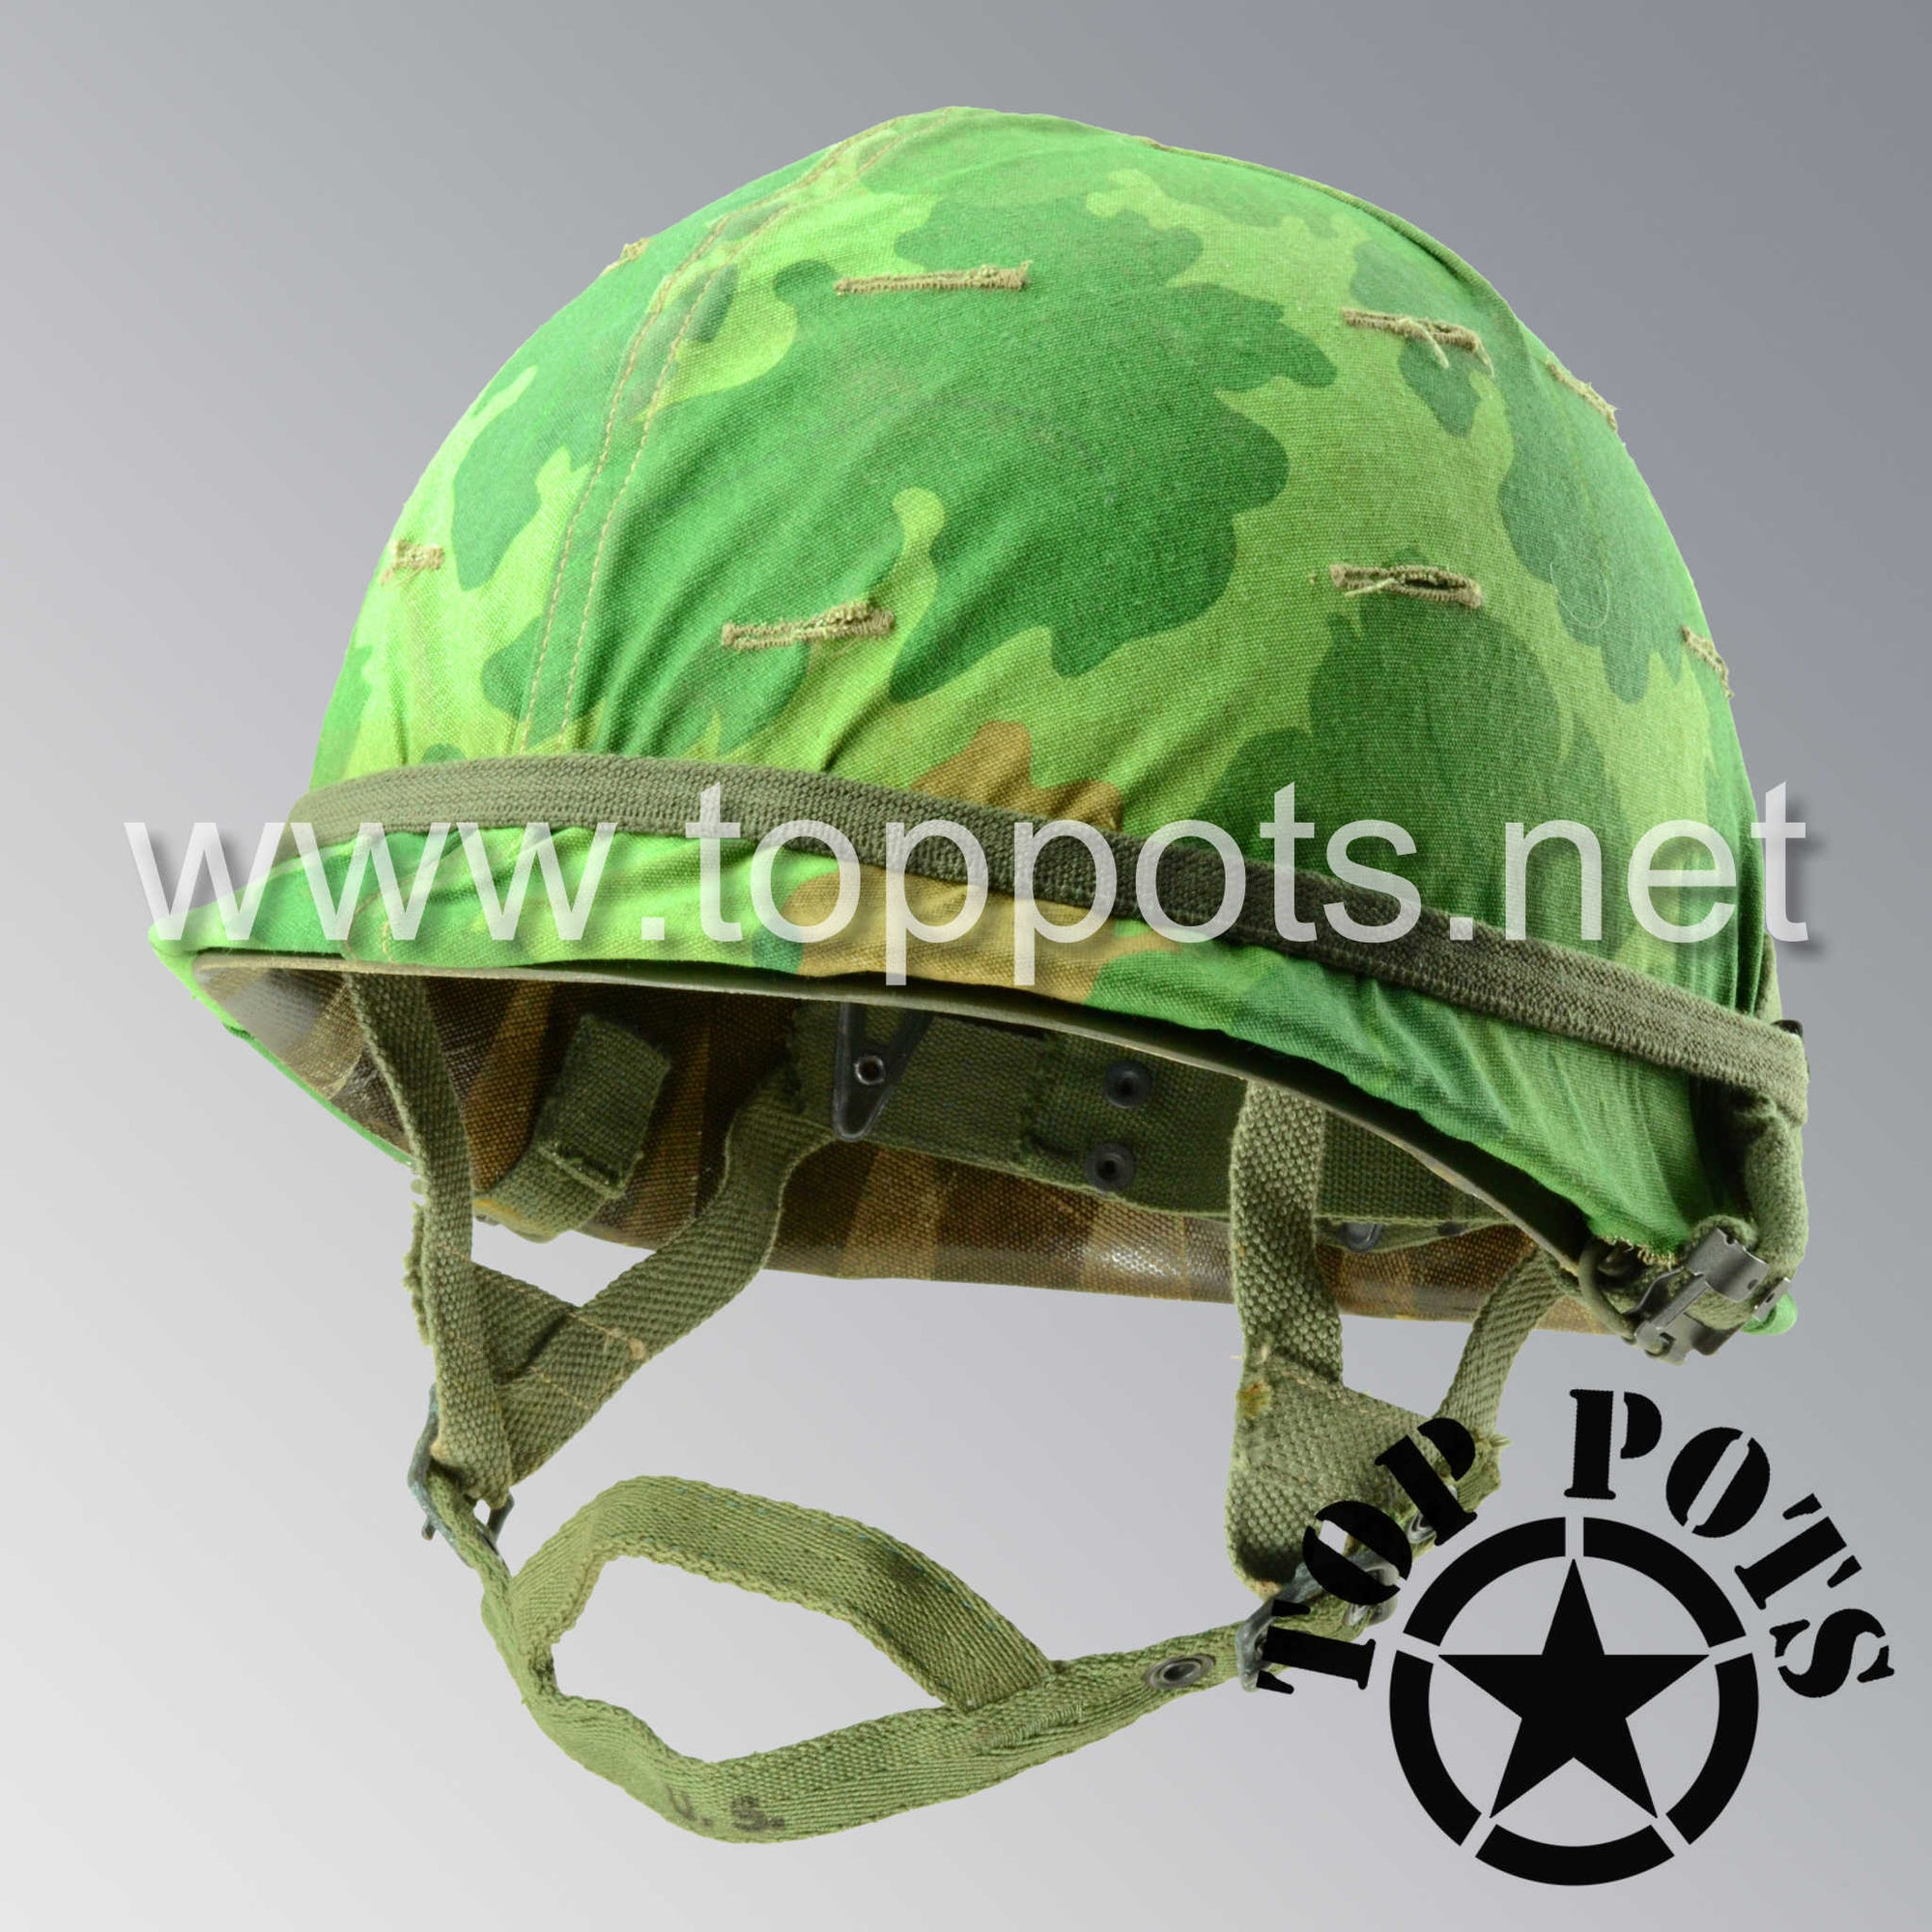 Image 1 of Vietnam War US Army Restored Original P55 M1C Paratrooper Airborne Helmet Swivel Bale Shell and Liner with Mitchell Pattern Camouflage Cover